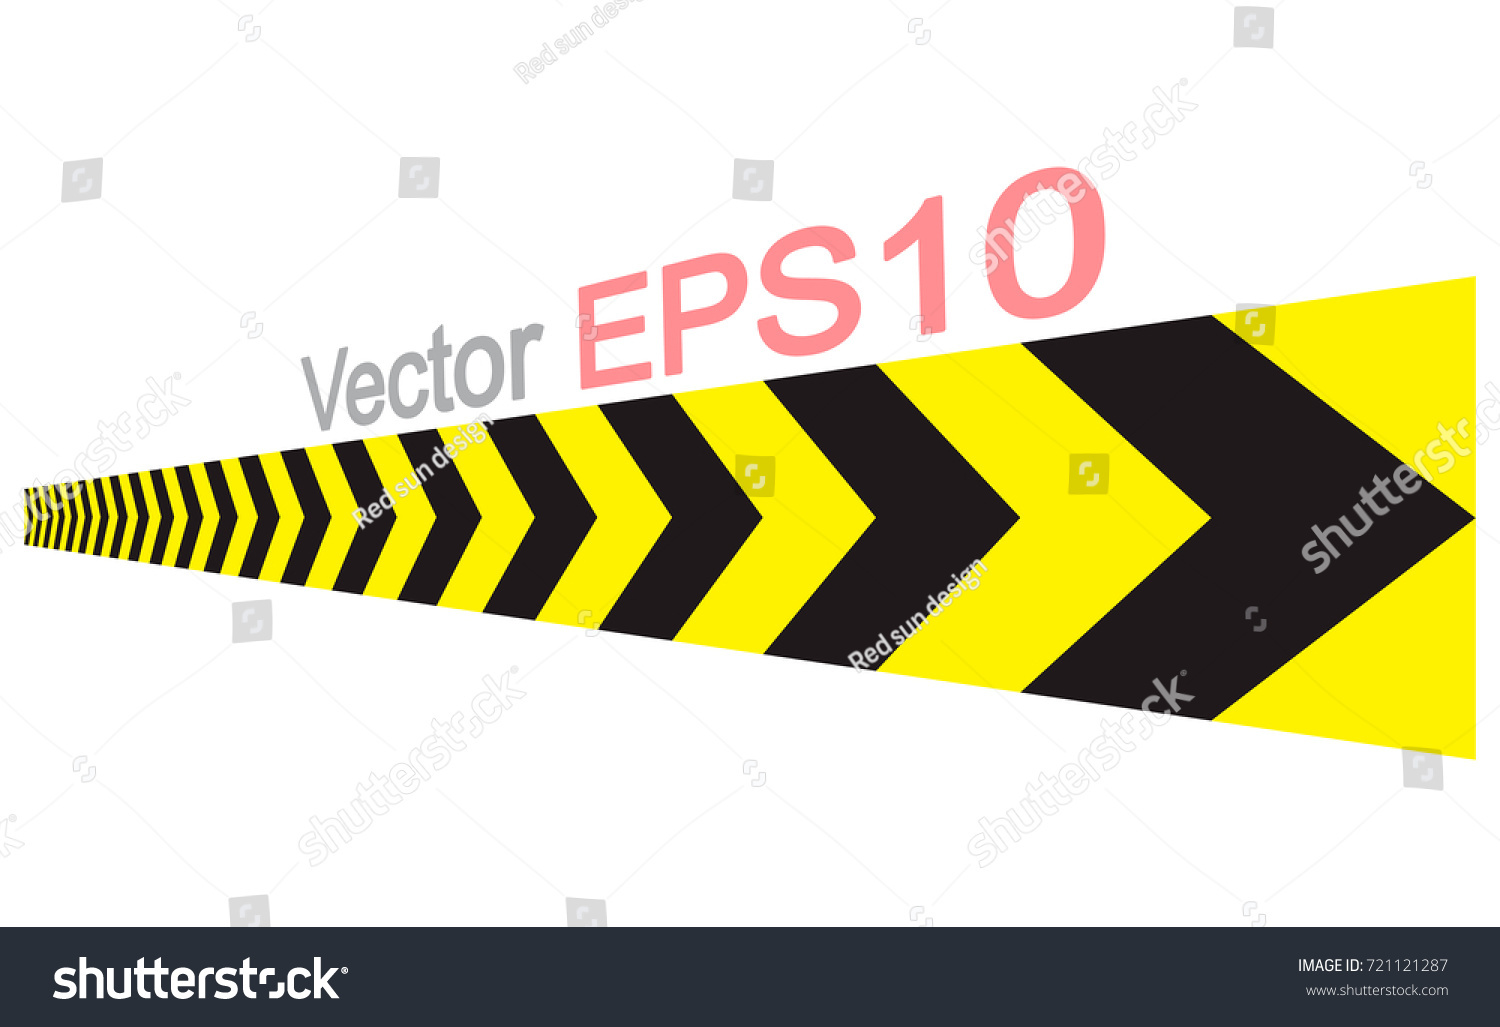 Caution Sign Arrow Yellow Black Color Stock Vector Royalty Free